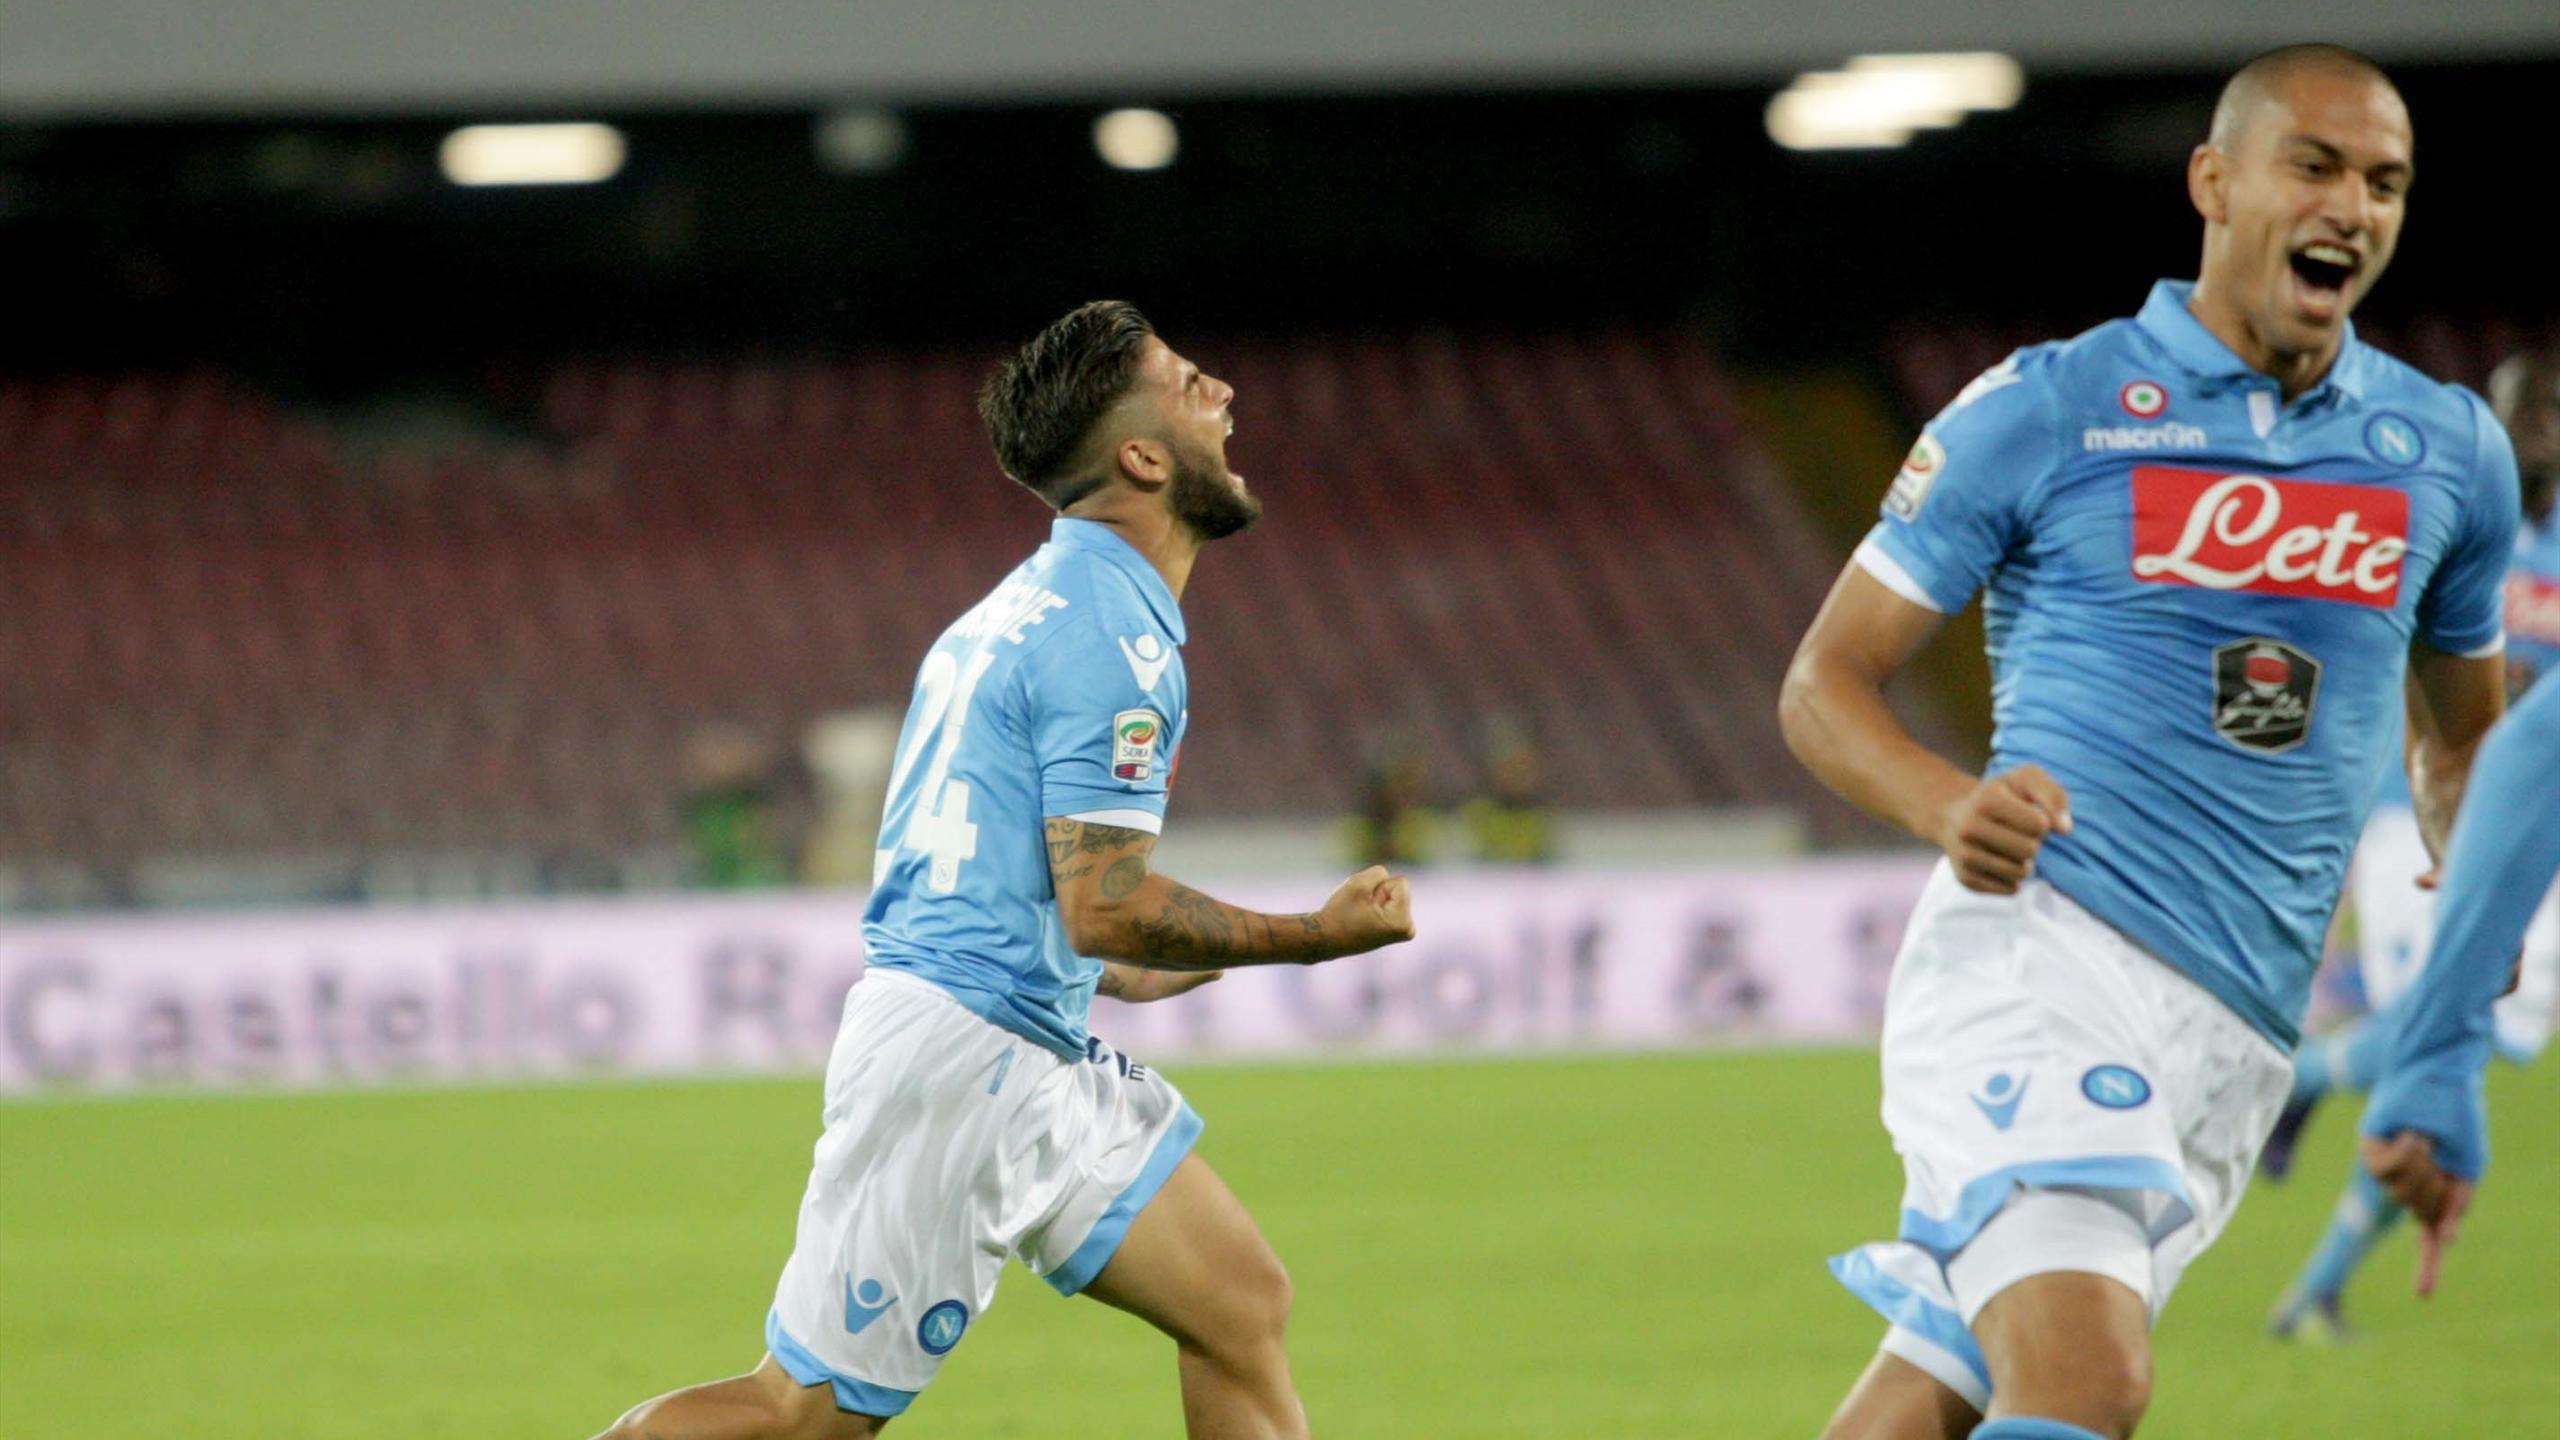 Video: Napoli vs Torino